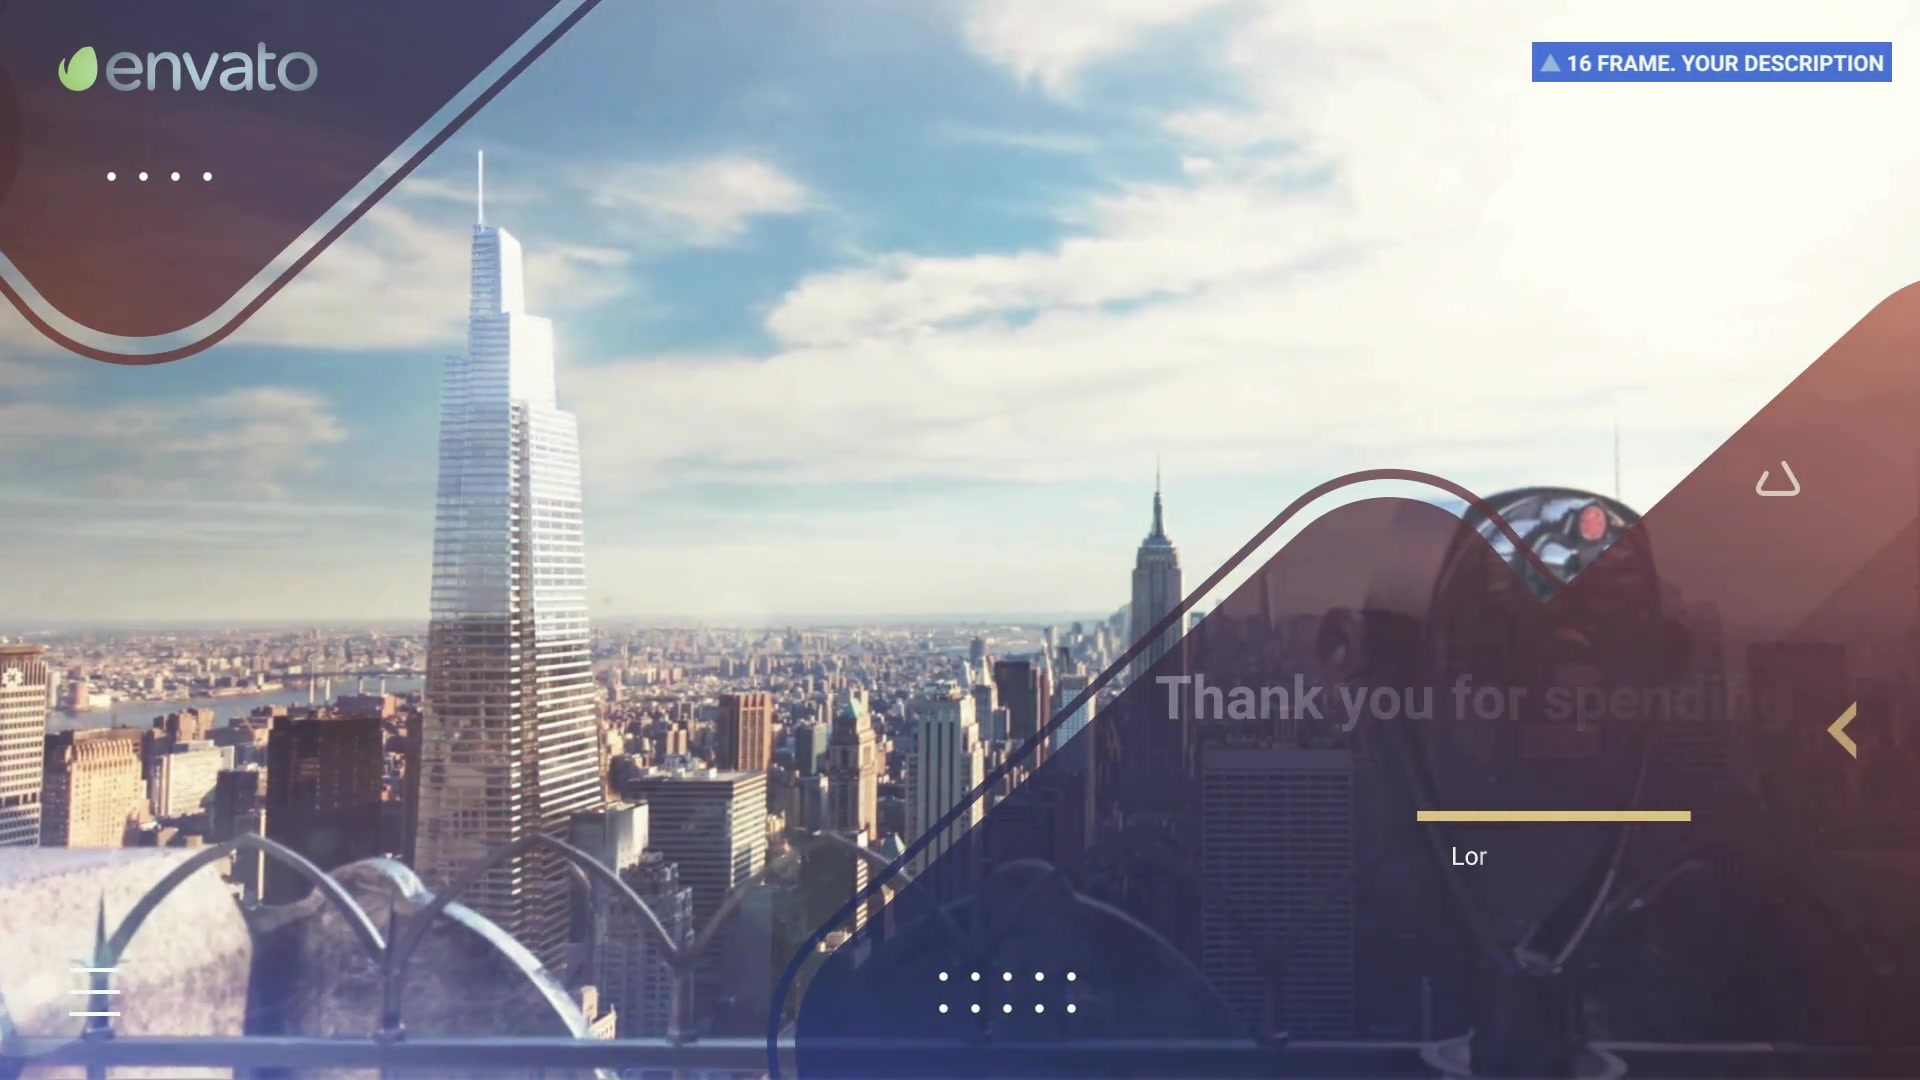 Architecture Business Promotion Slideshow Videohive 24827639 After Effects Image 10